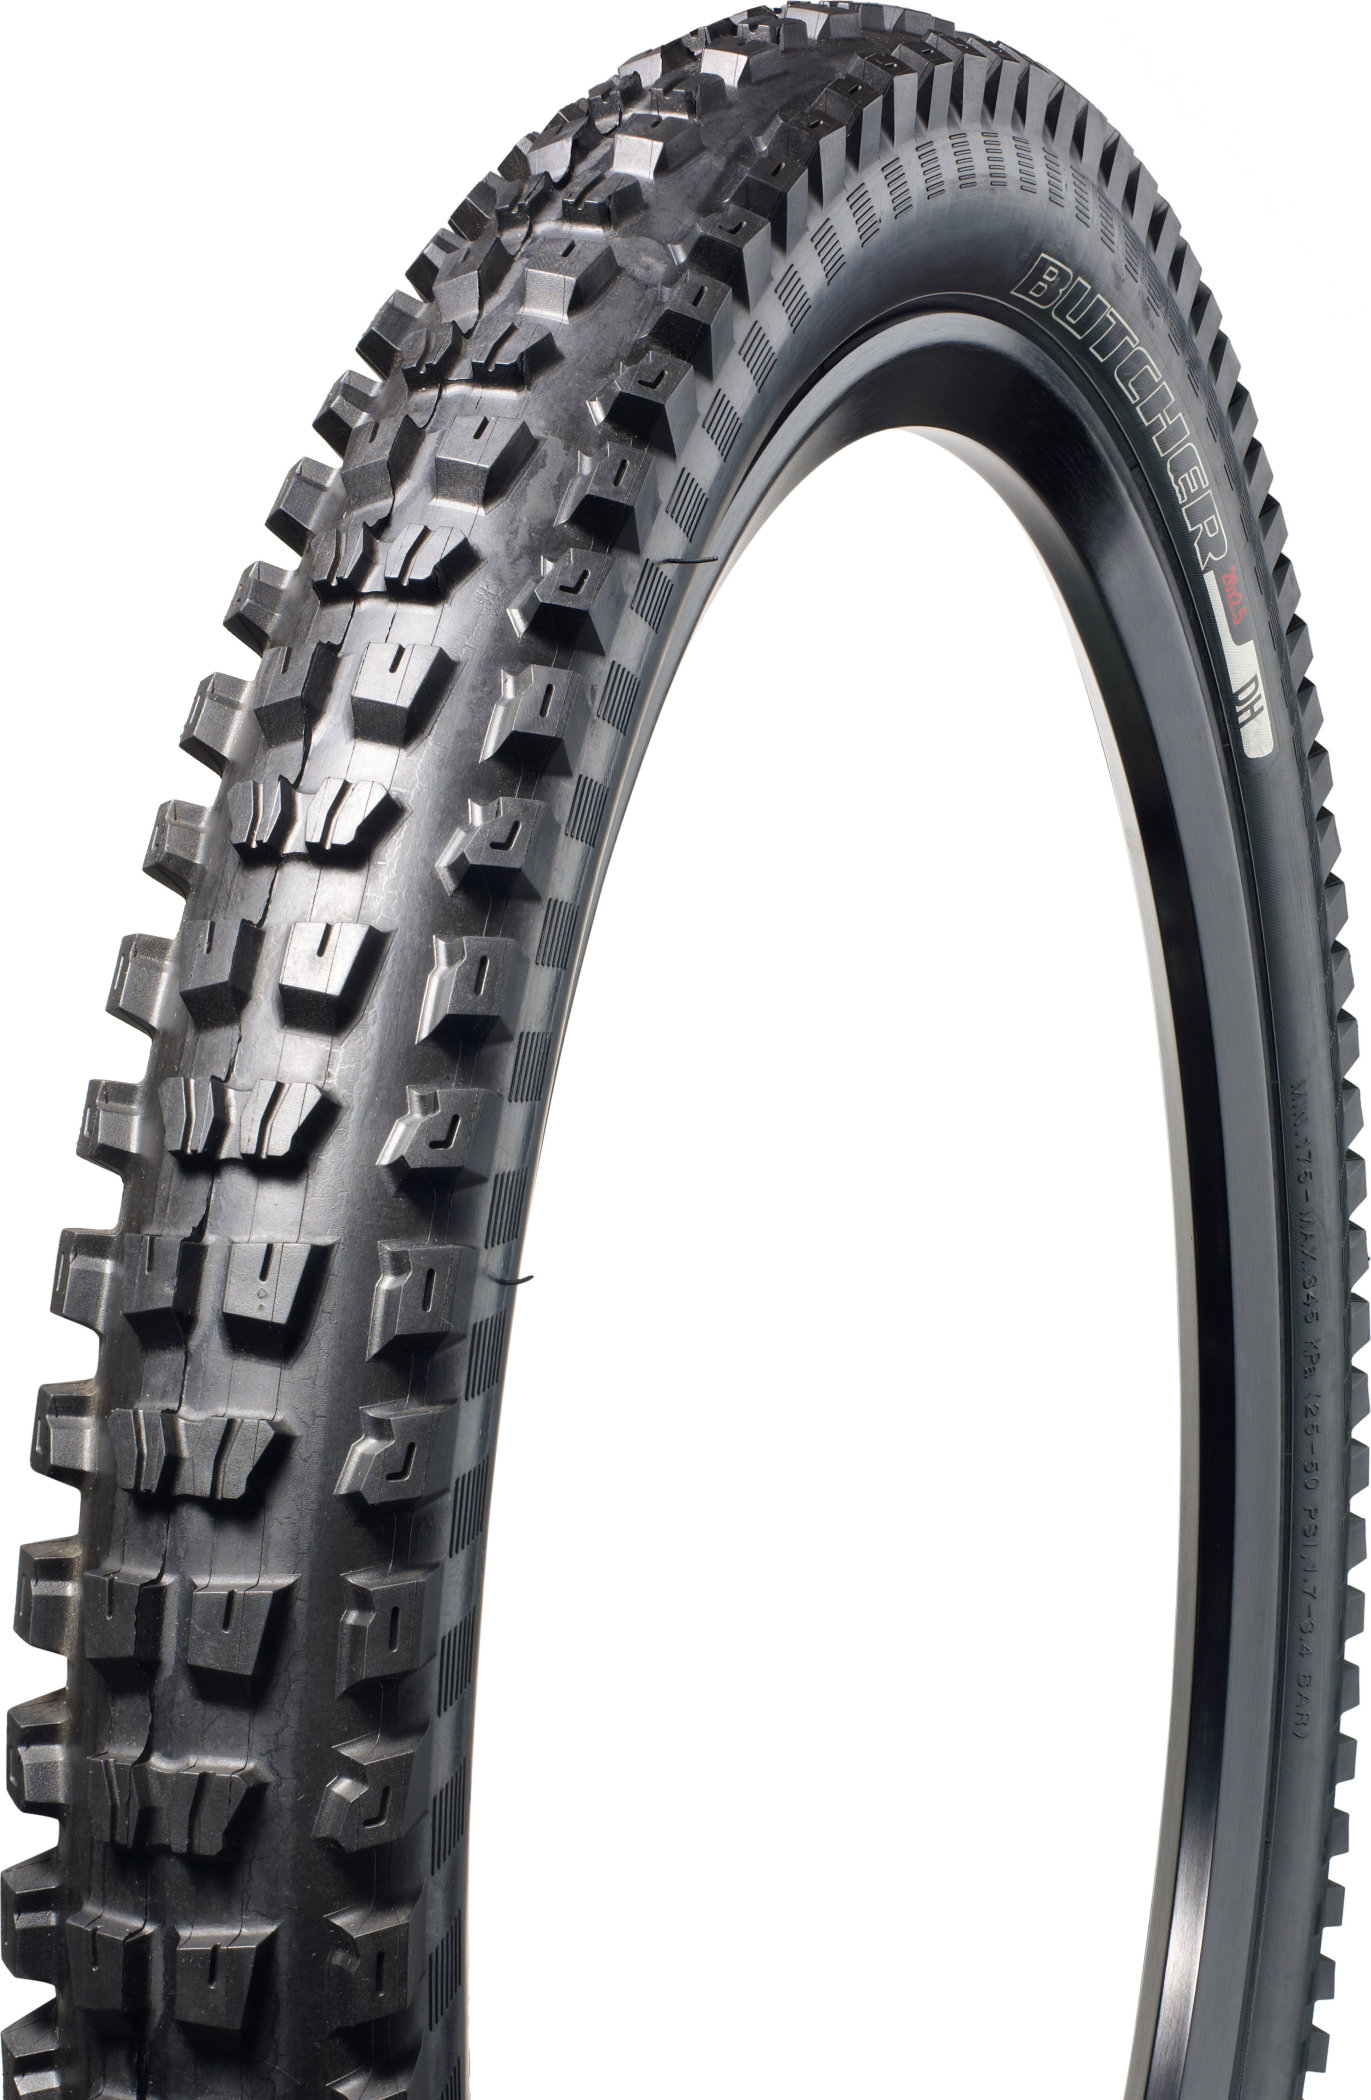 SPECIALIZED BUTCHER DH TIRE 26X2.5 - SPECIALIZED BUTCHER DH TIRE 26X2.5